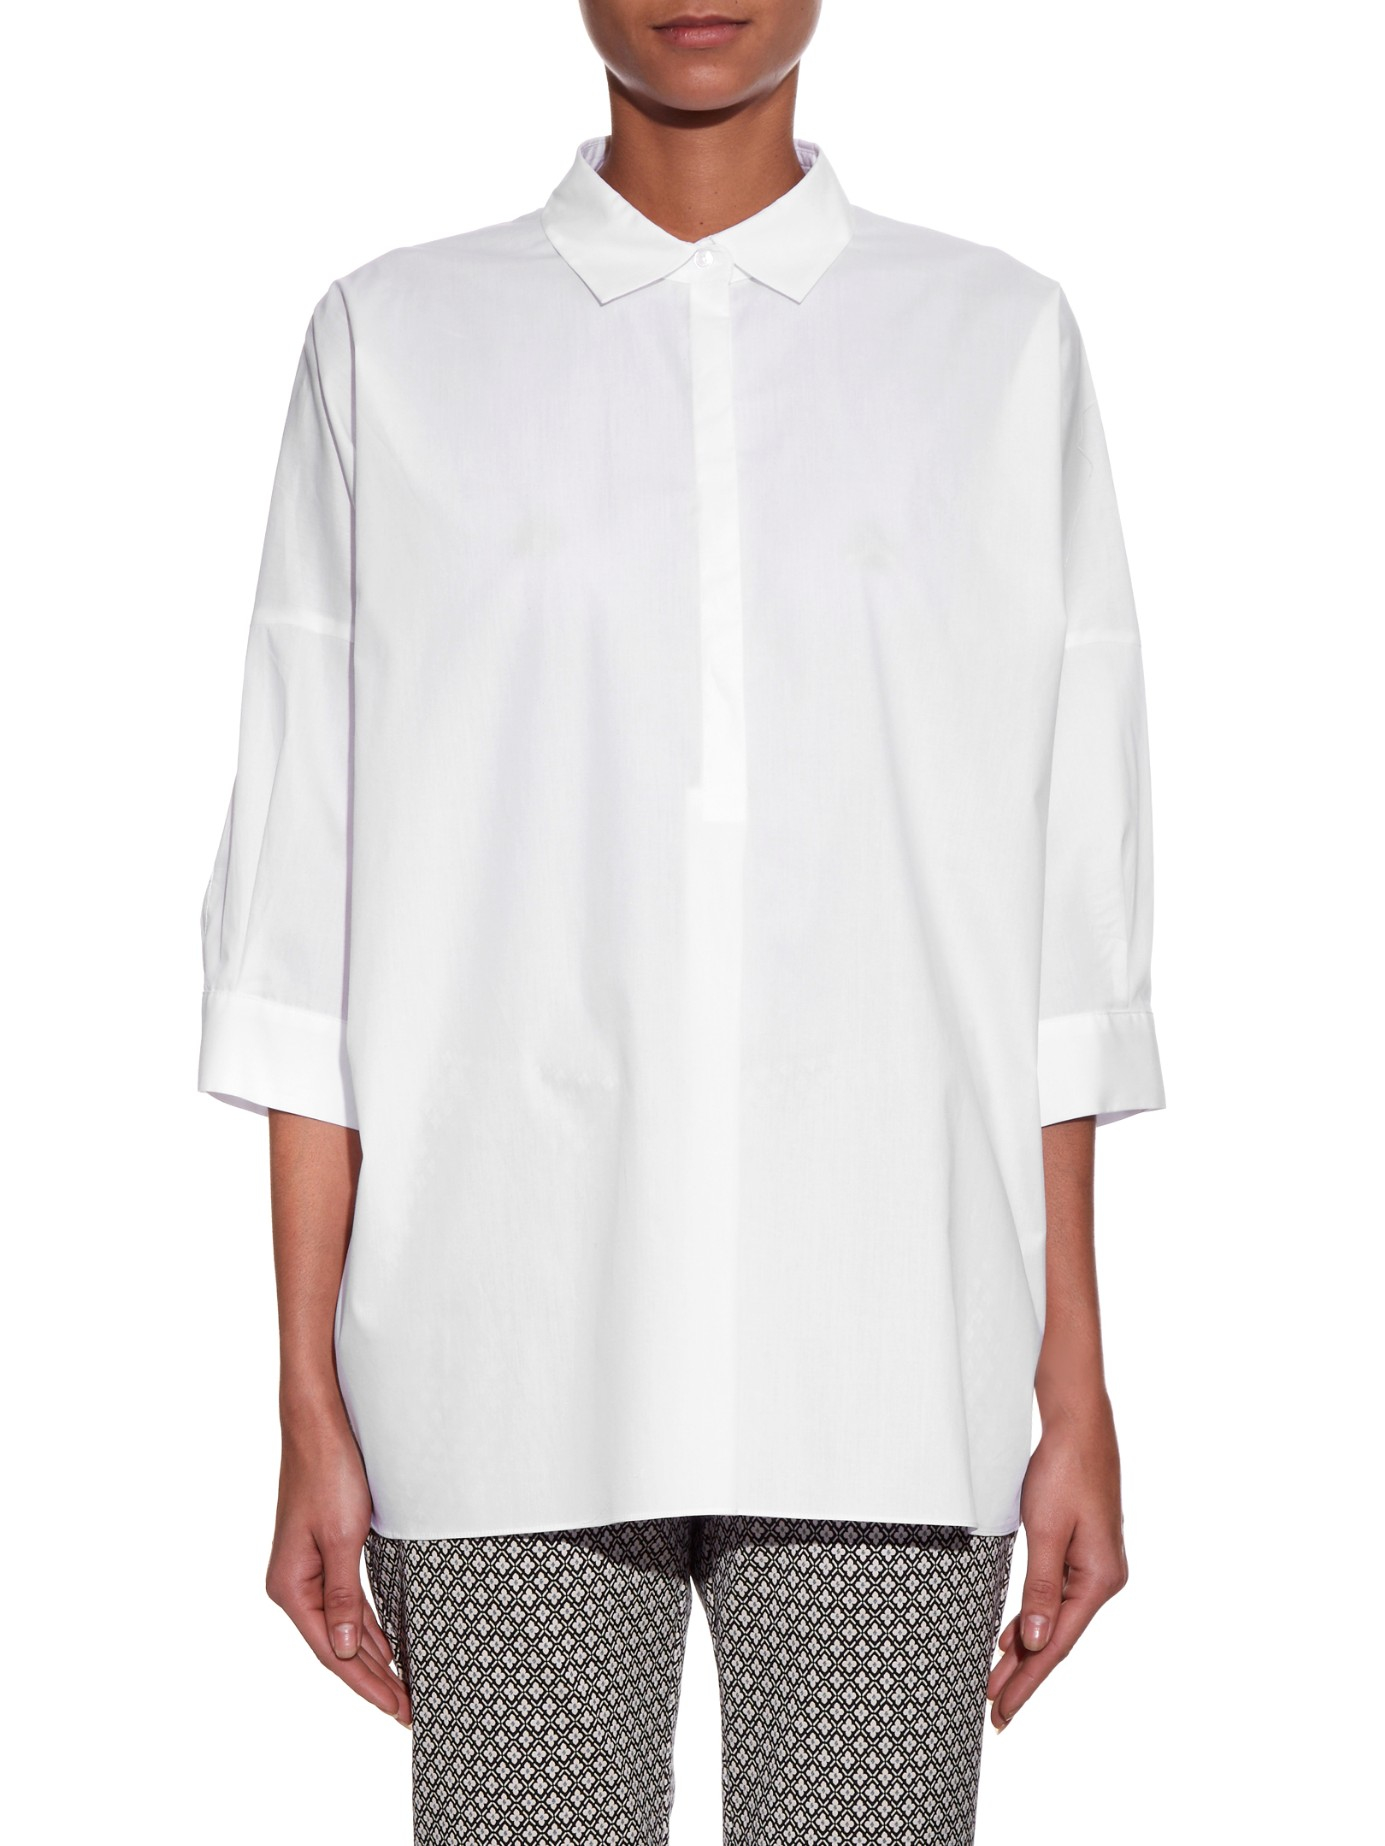 weekend by maxmara sandalo shirt in white lyst. Black Bedroom Furniture Sets. Home Design Ideas